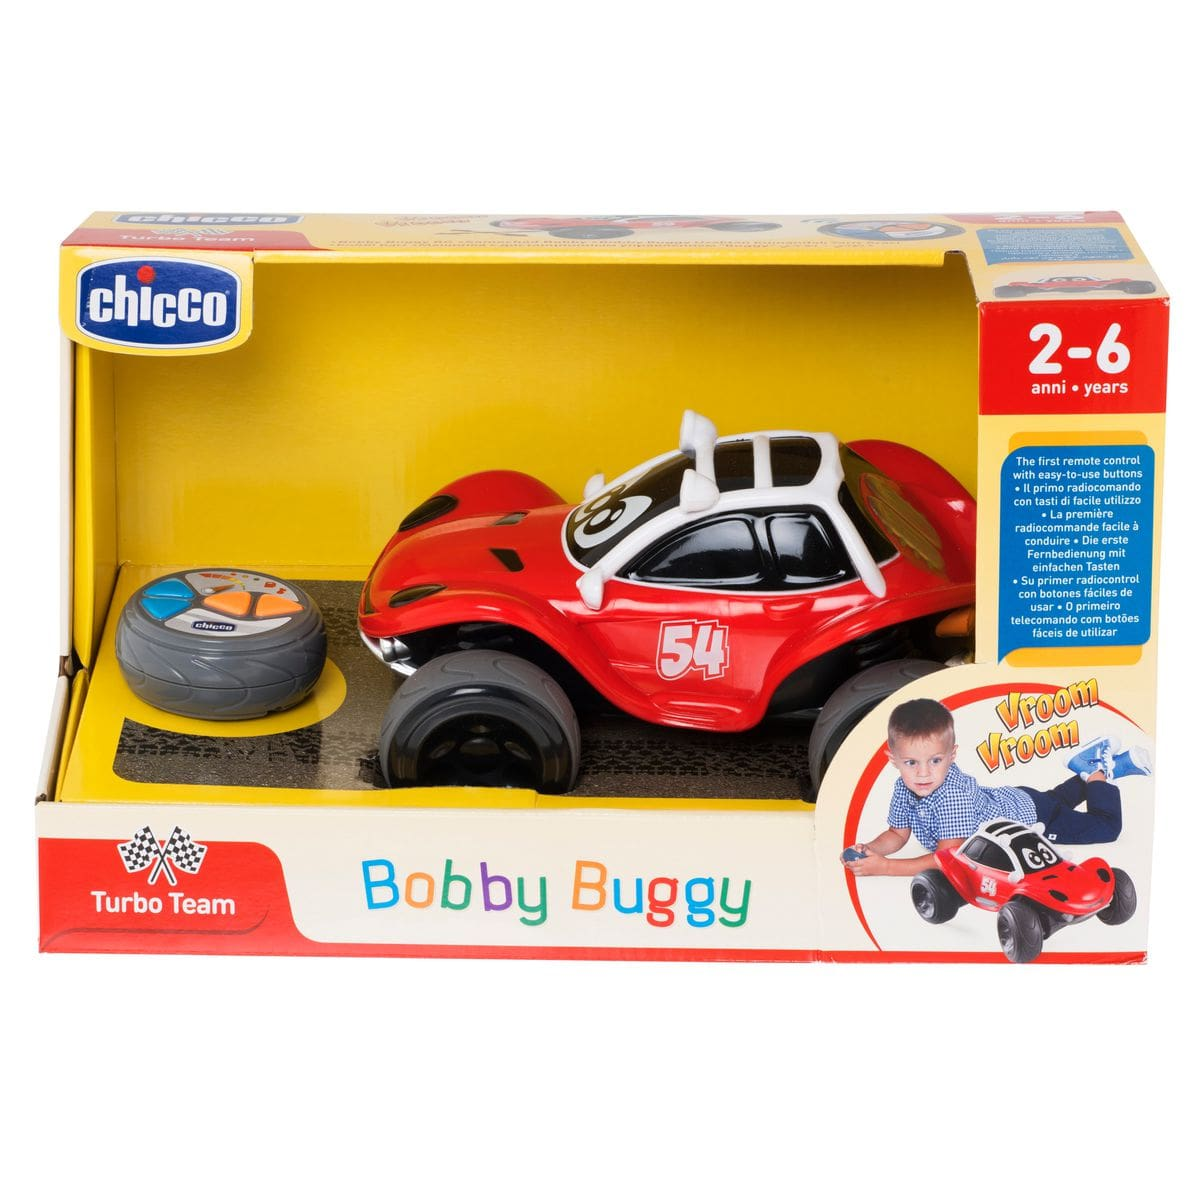 Chicco Bobby Buggy RC